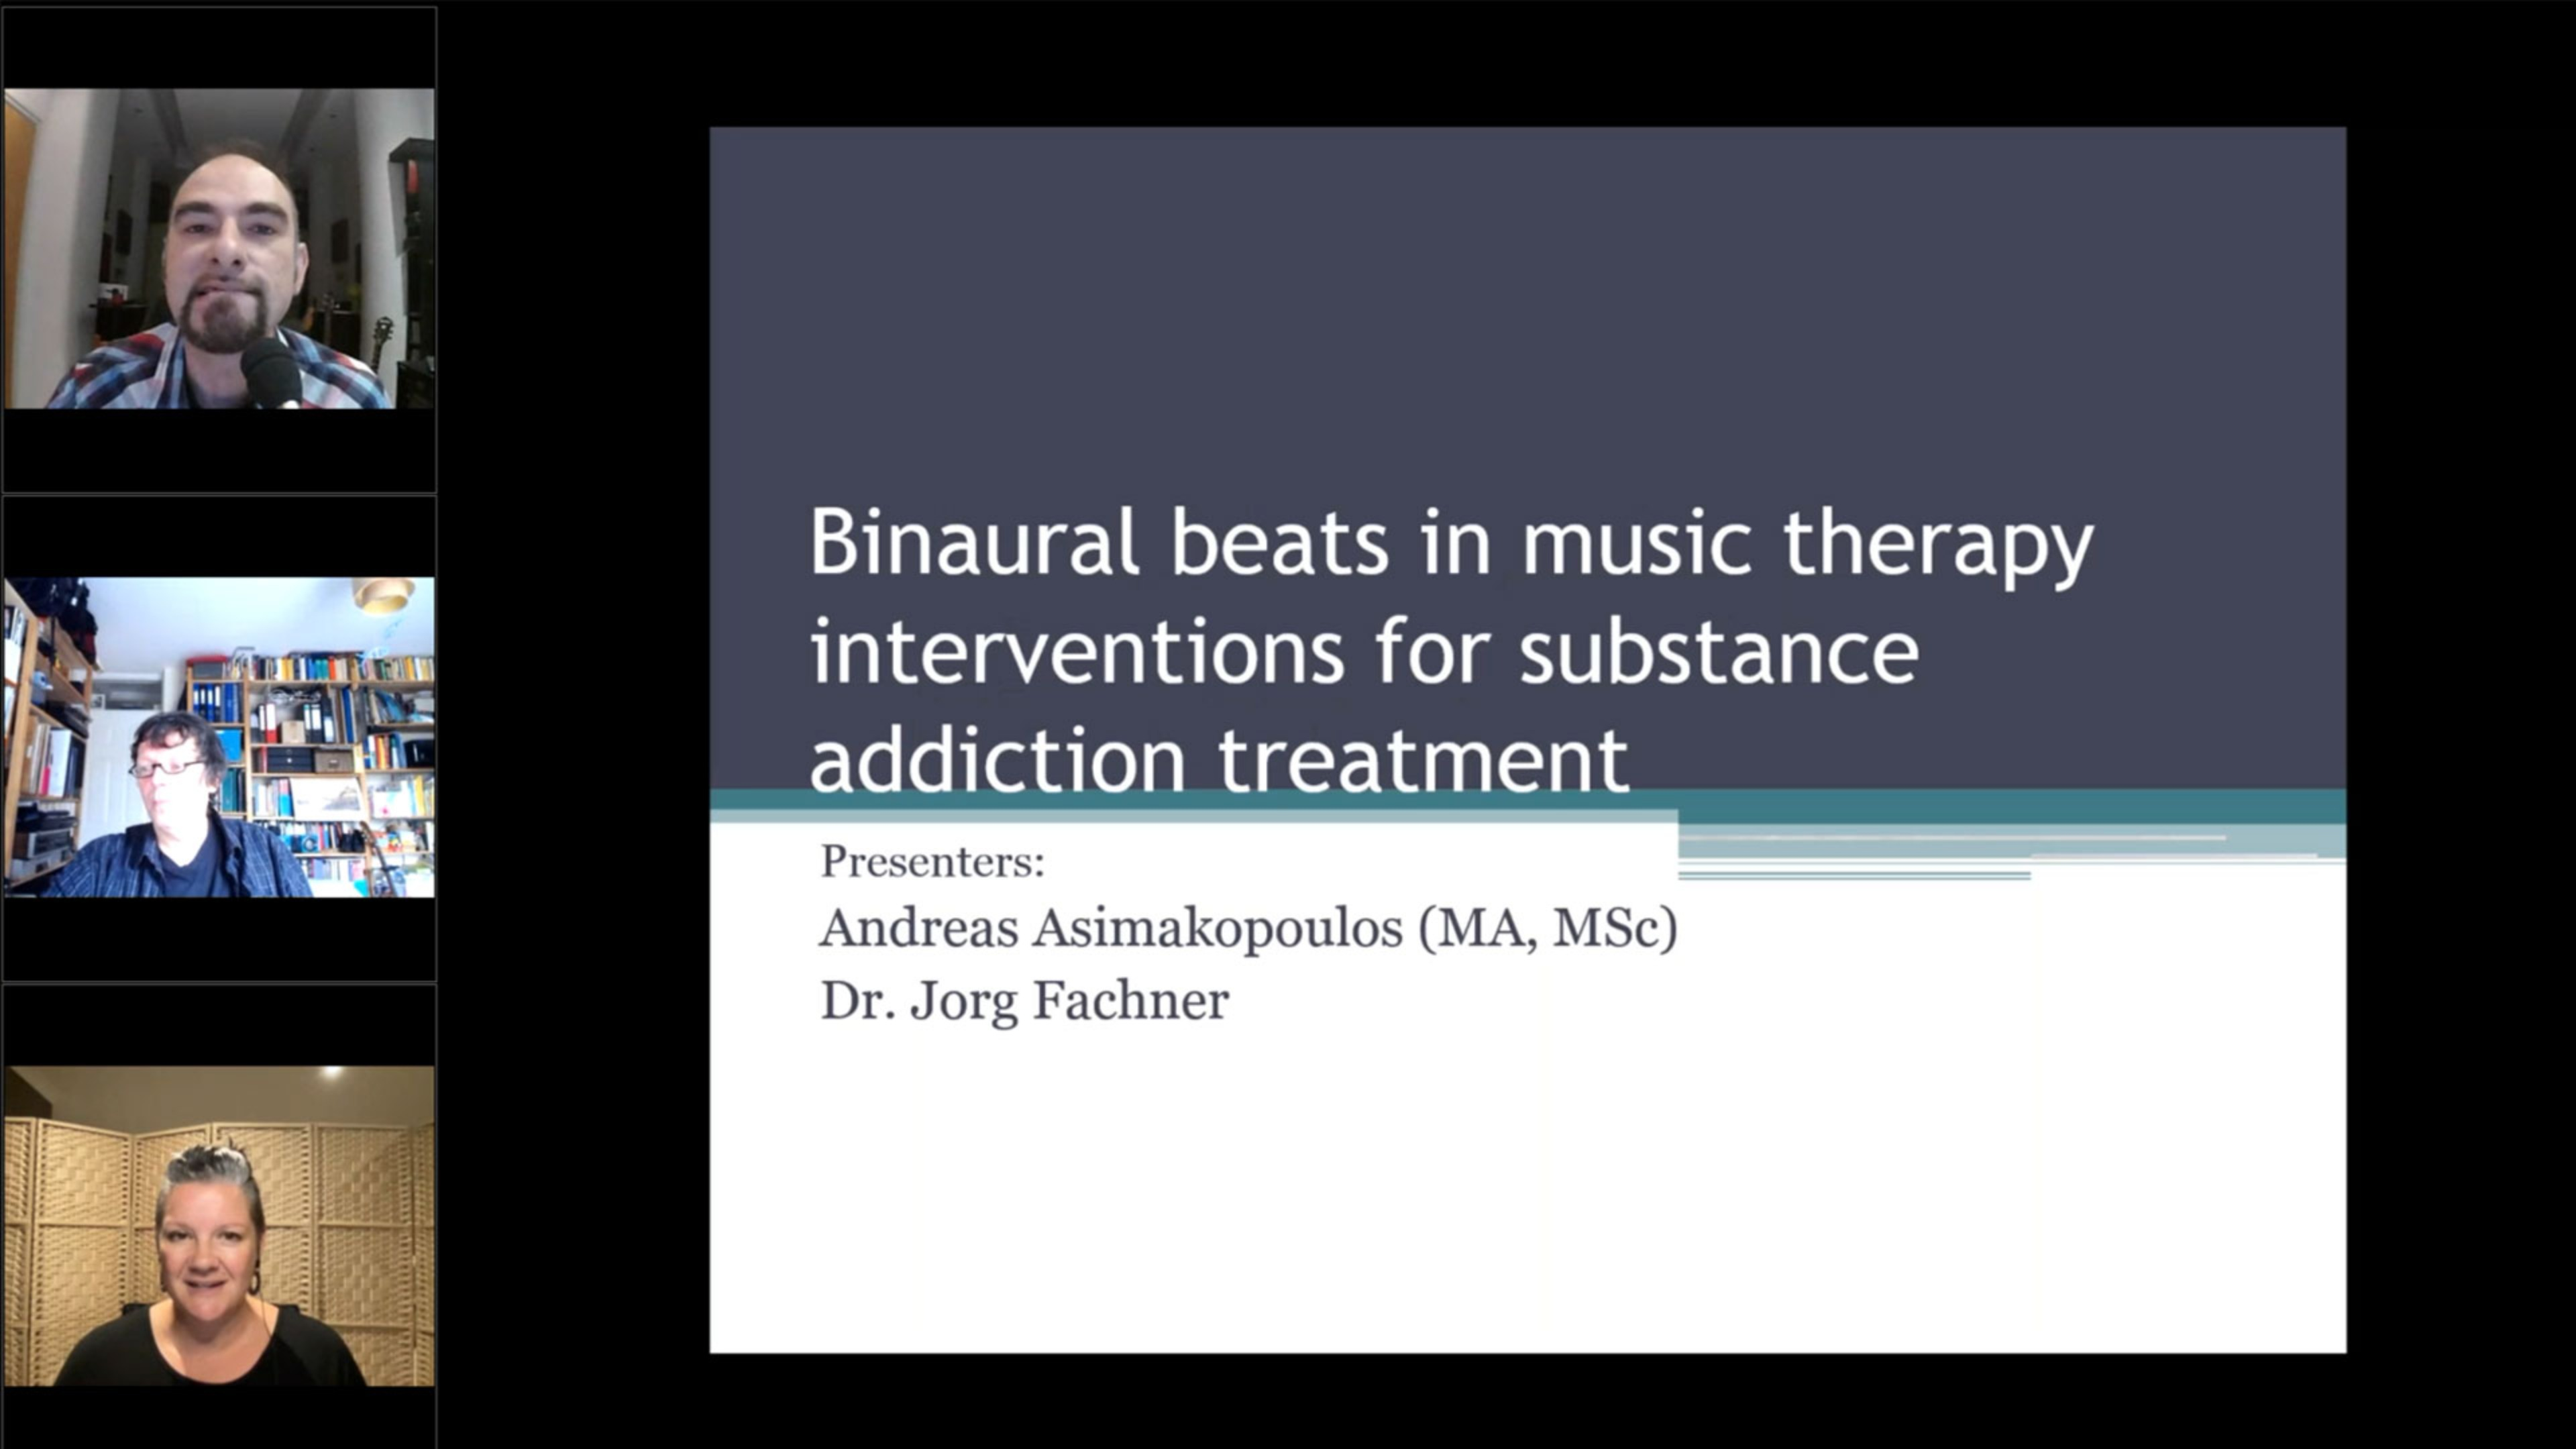 Binaural beats in music therapy interventions for substance addiction treatment